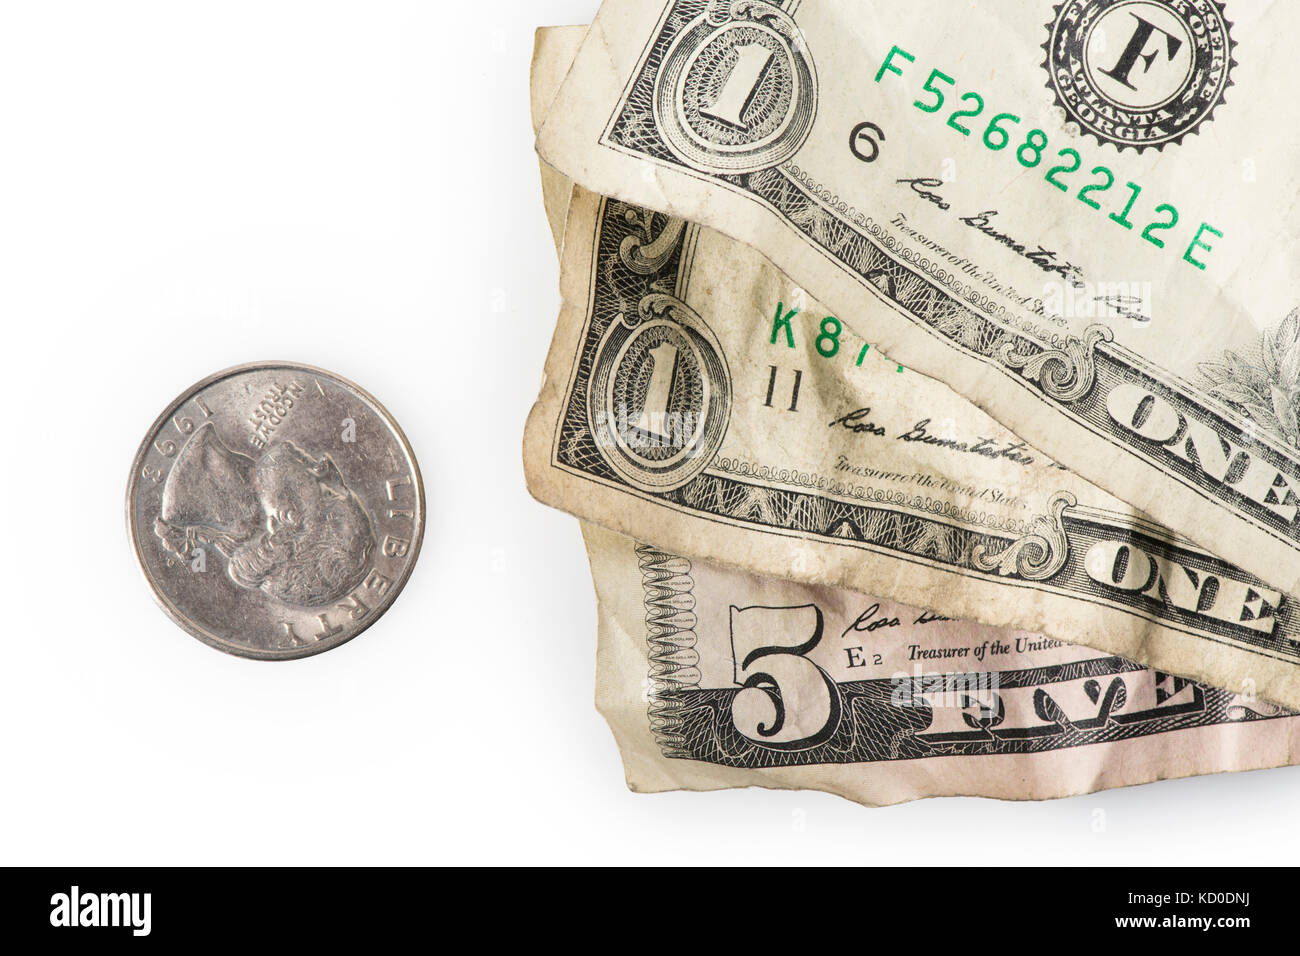 Wrinkled dollar bills and a quarter adding up to $7.25, the current (as of 2016) U.S. Federal Minimum wage. - Stock Image